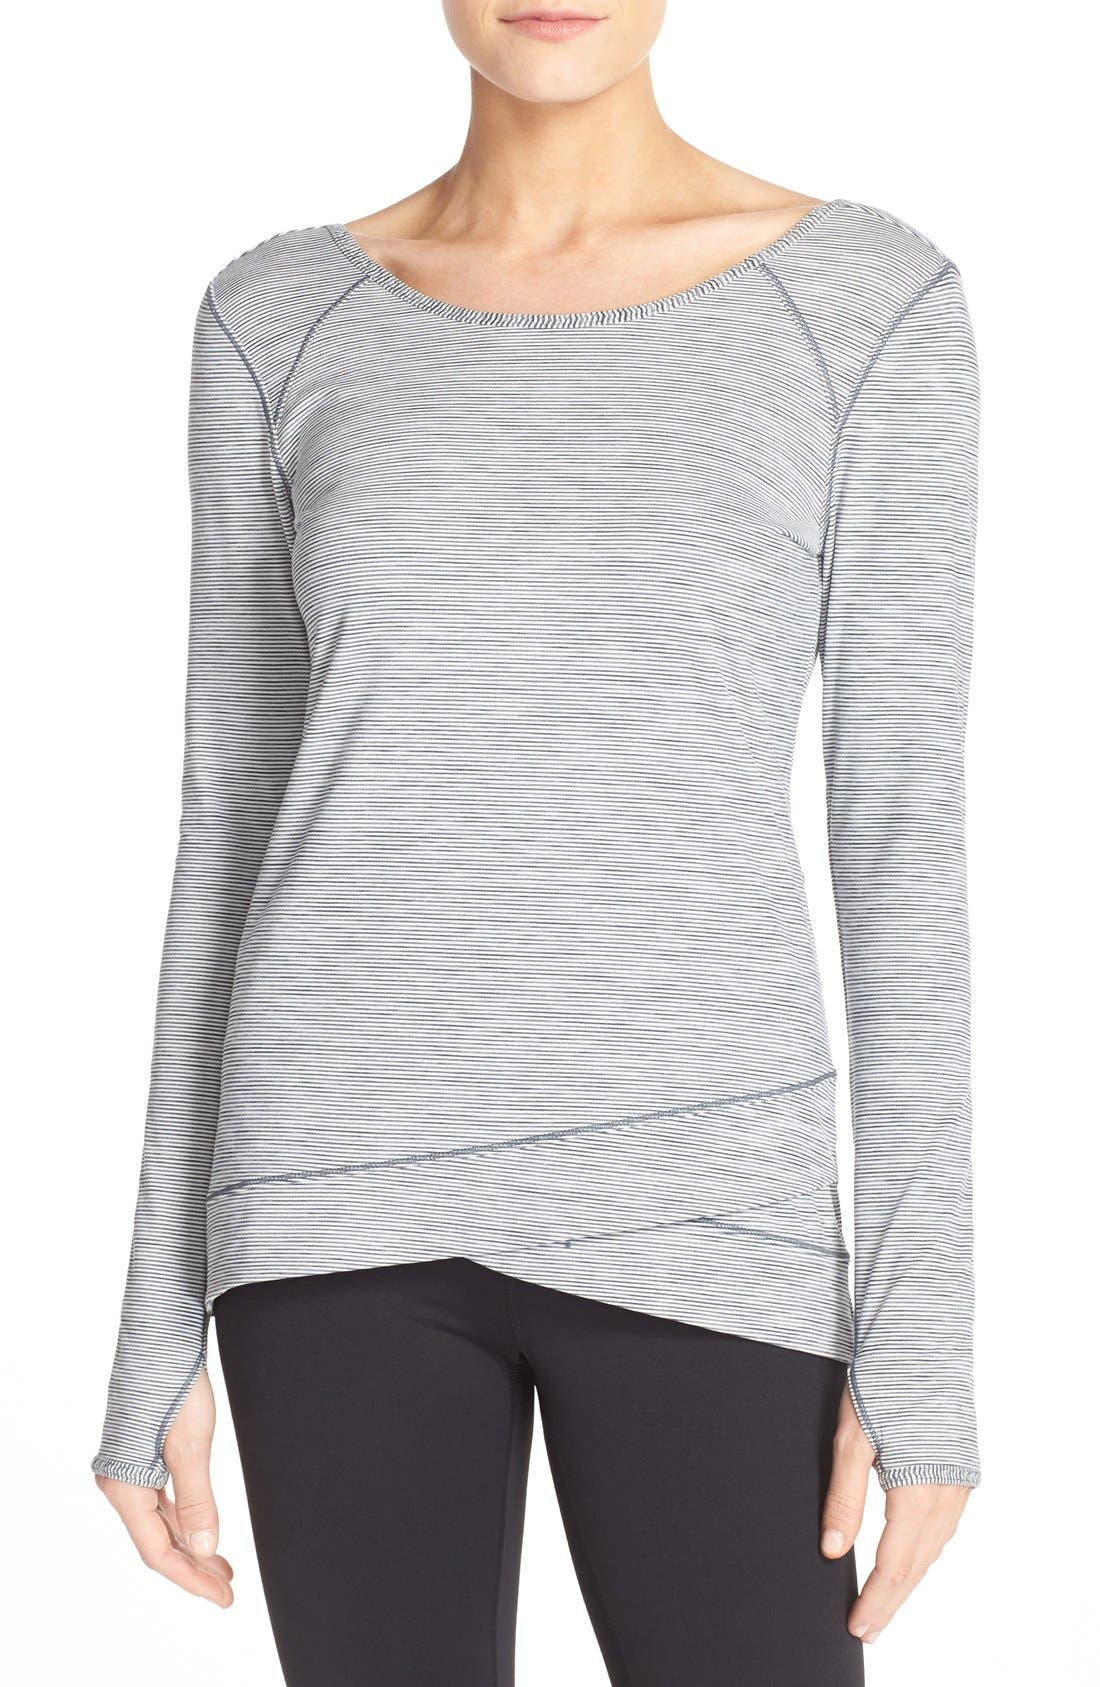 Alternate Image 1 Selected - Zella 'Layer Me' Pullover